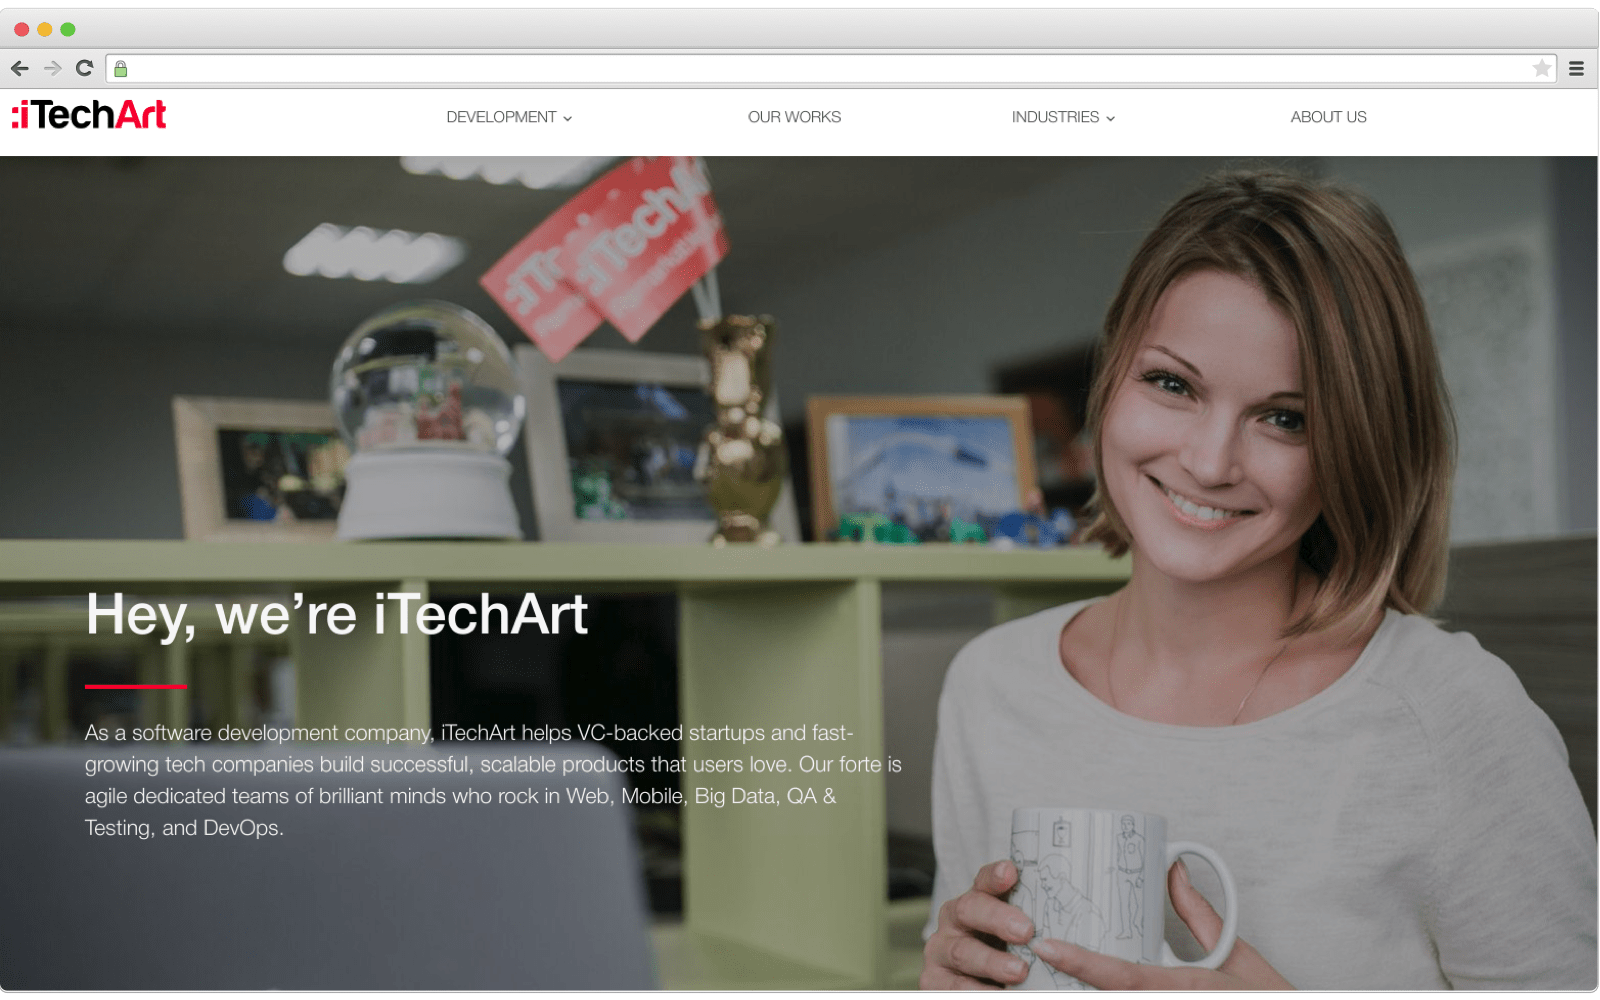 Ecommerce development company: iTechArt